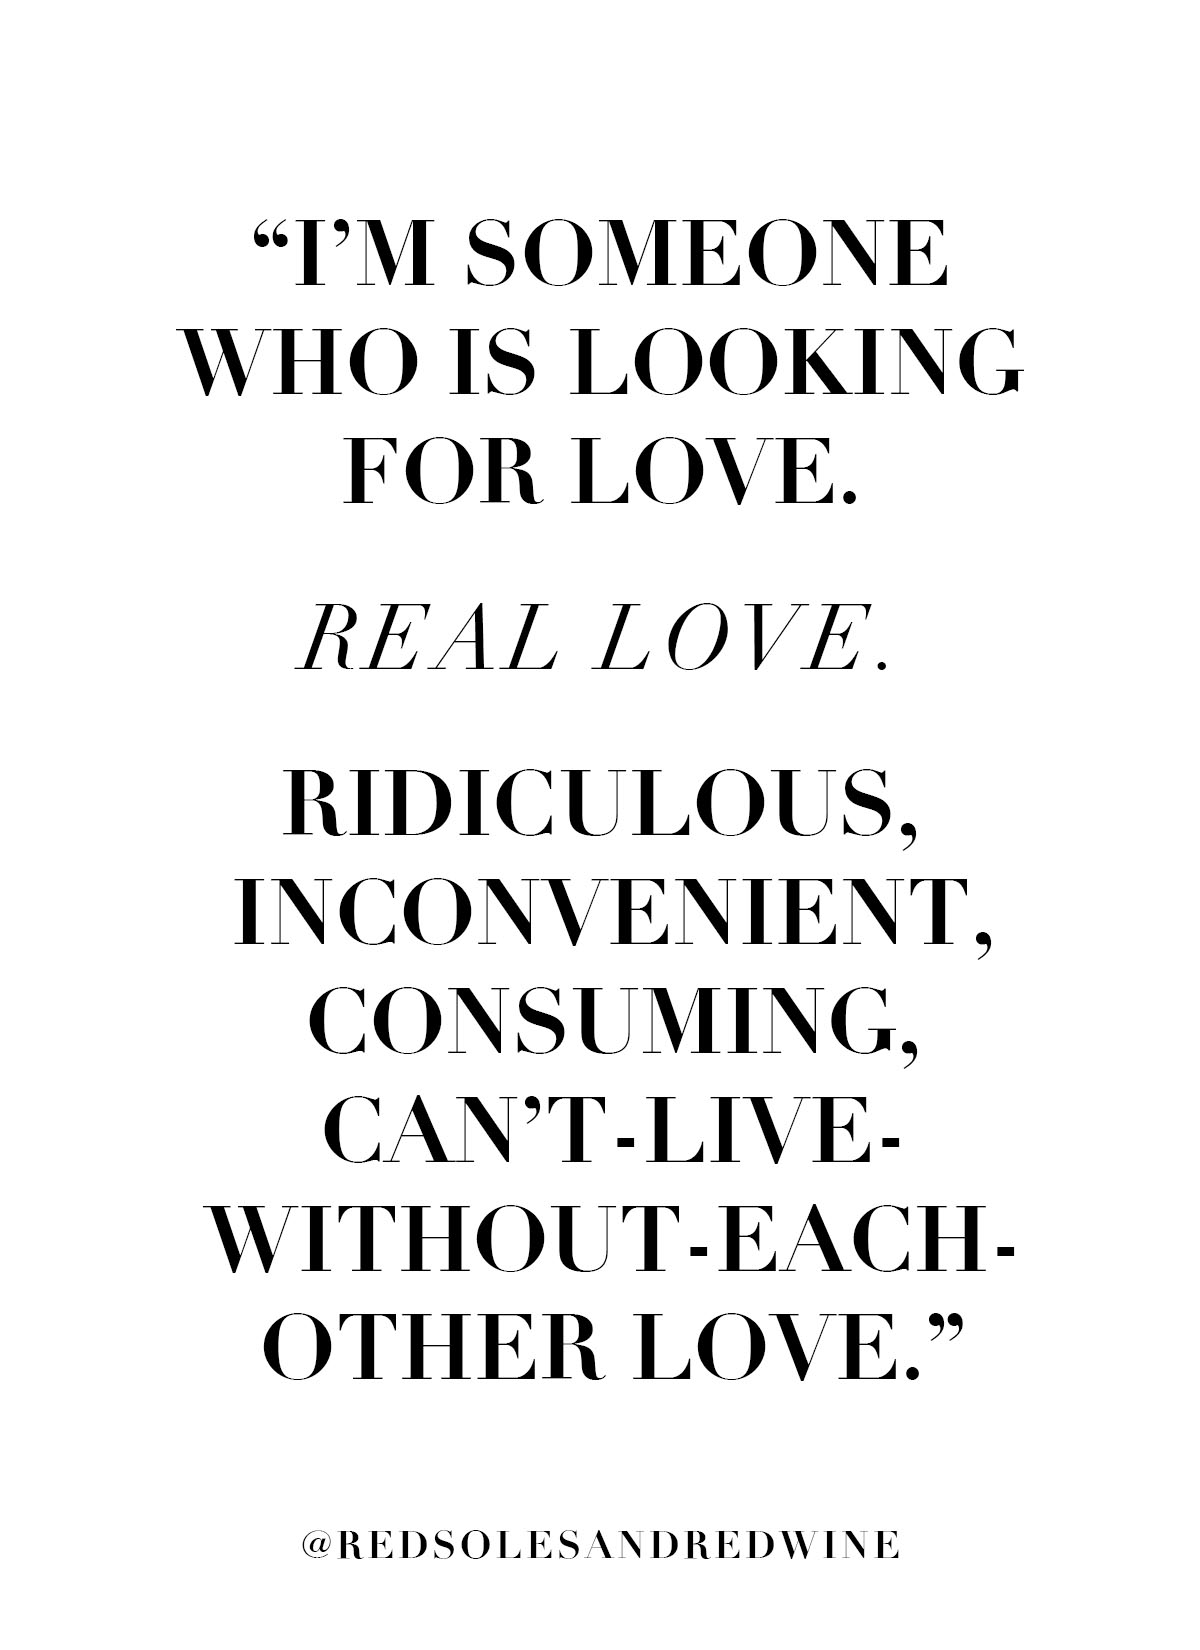 real love quote, looking for real love, love quotes, romantic quotes, relationship quotes, relationship goals, real talk, dating stories, romantic stories, relationship stories, Red Soles and Red Wine, Jennifer Worman